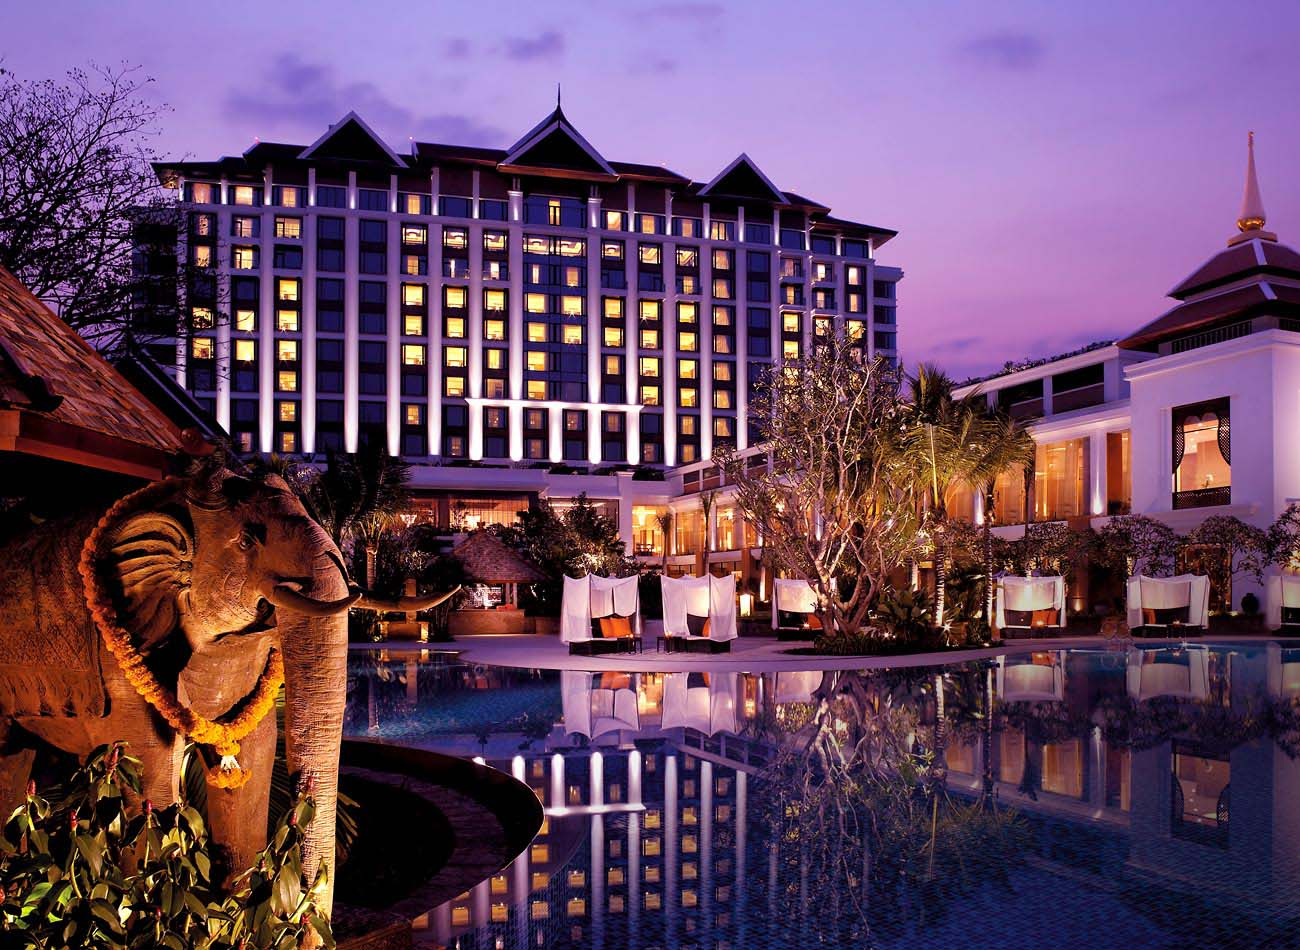 Home From Home In The Heart Of The City: The Shangri-La At Chiang Mai